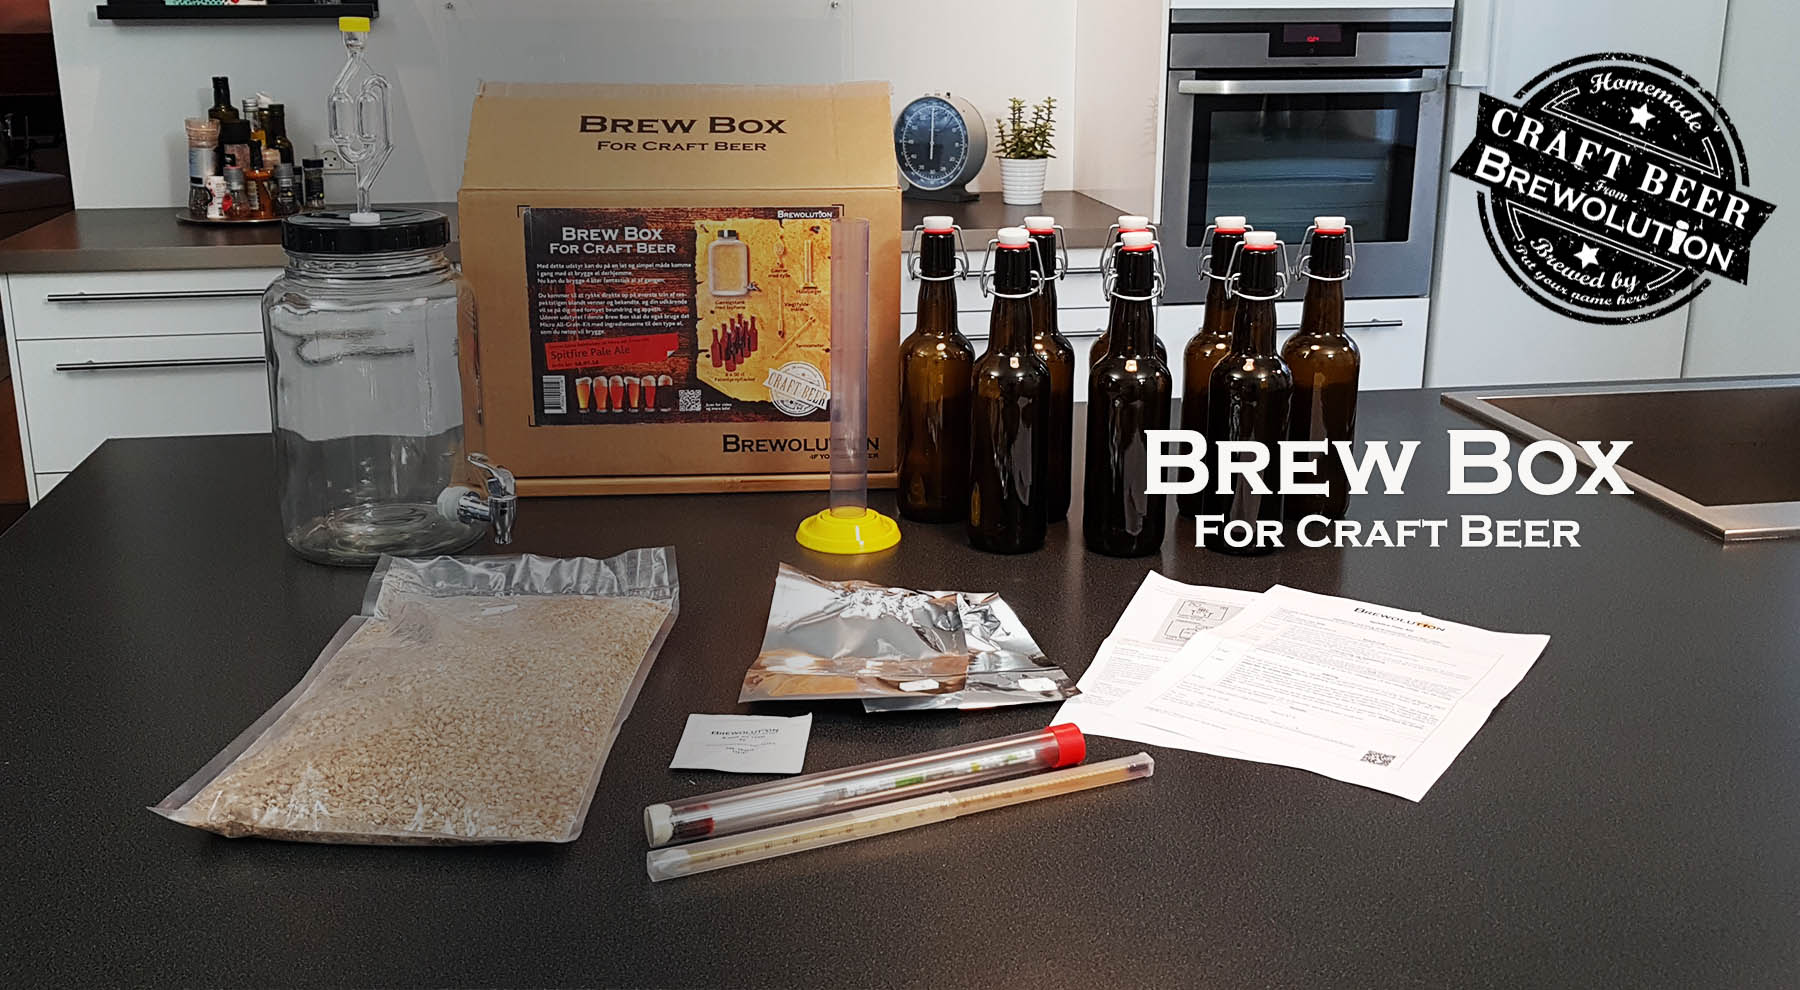 Brew Box - For Craft Beer